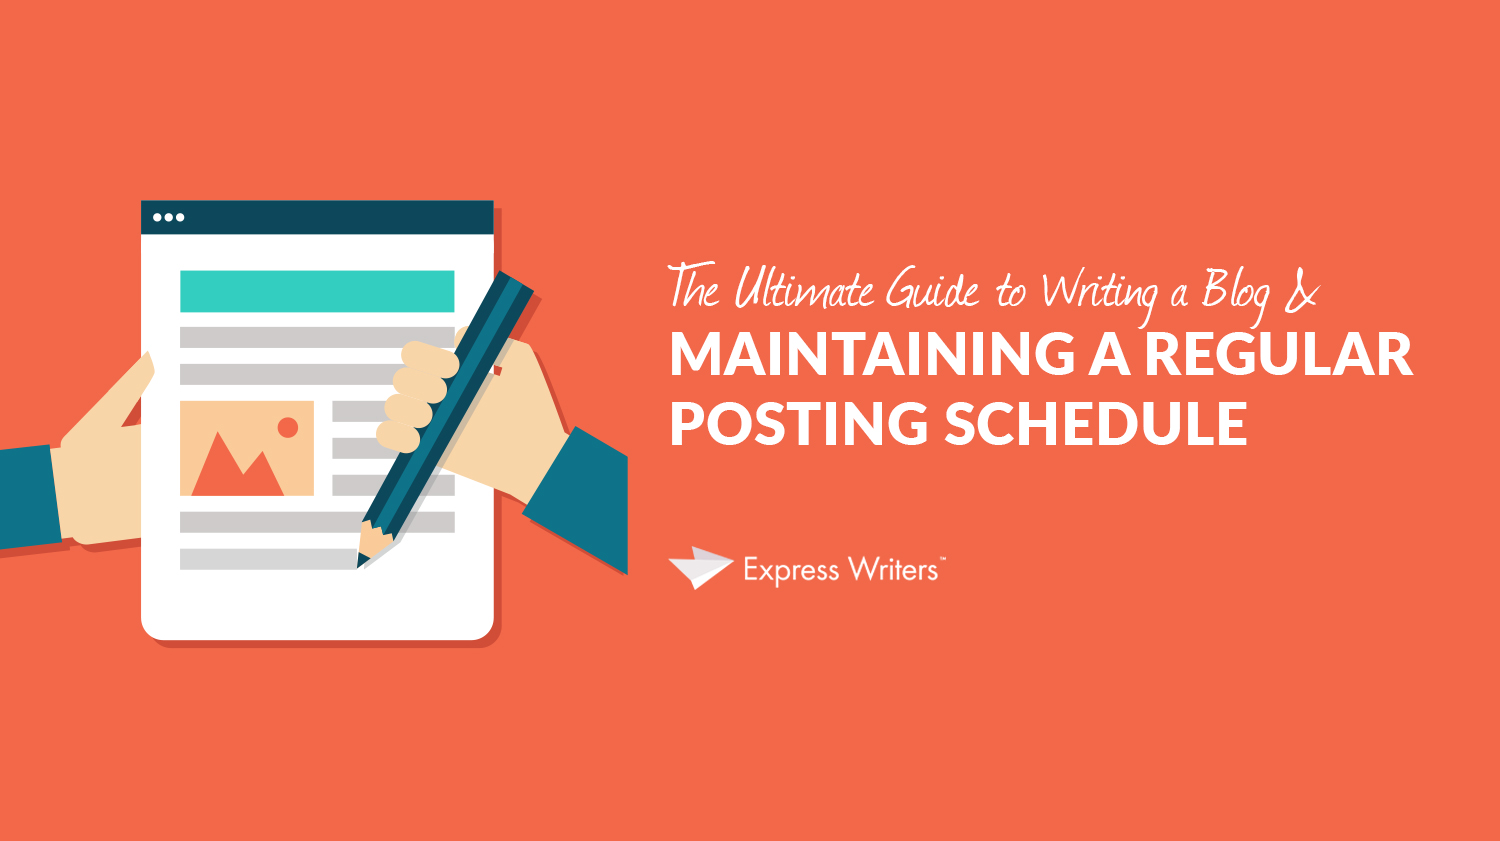 The Ultimate Guide to Writing a Blog & a Regular Posting Schedule inset